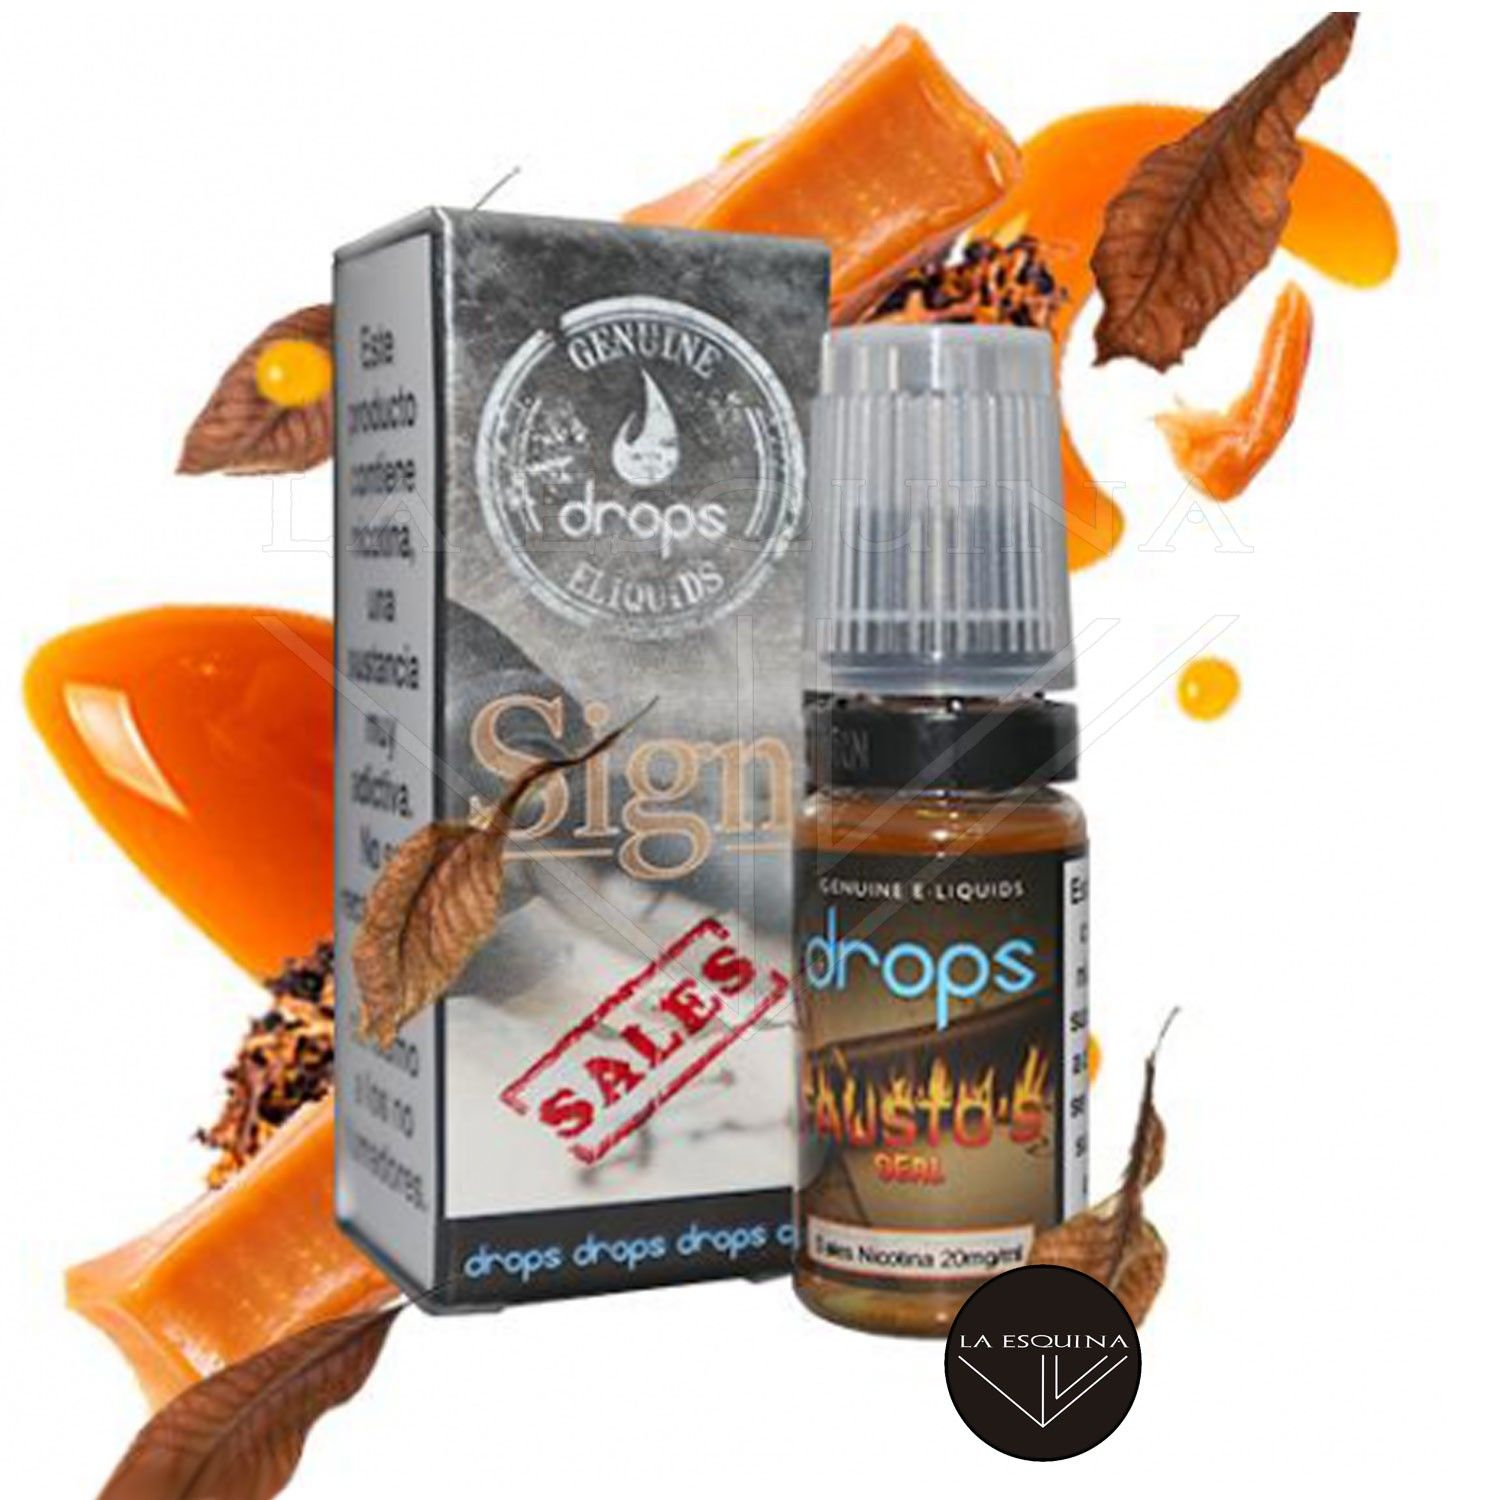 Sales DROPS Fausto's Deal 10 ml